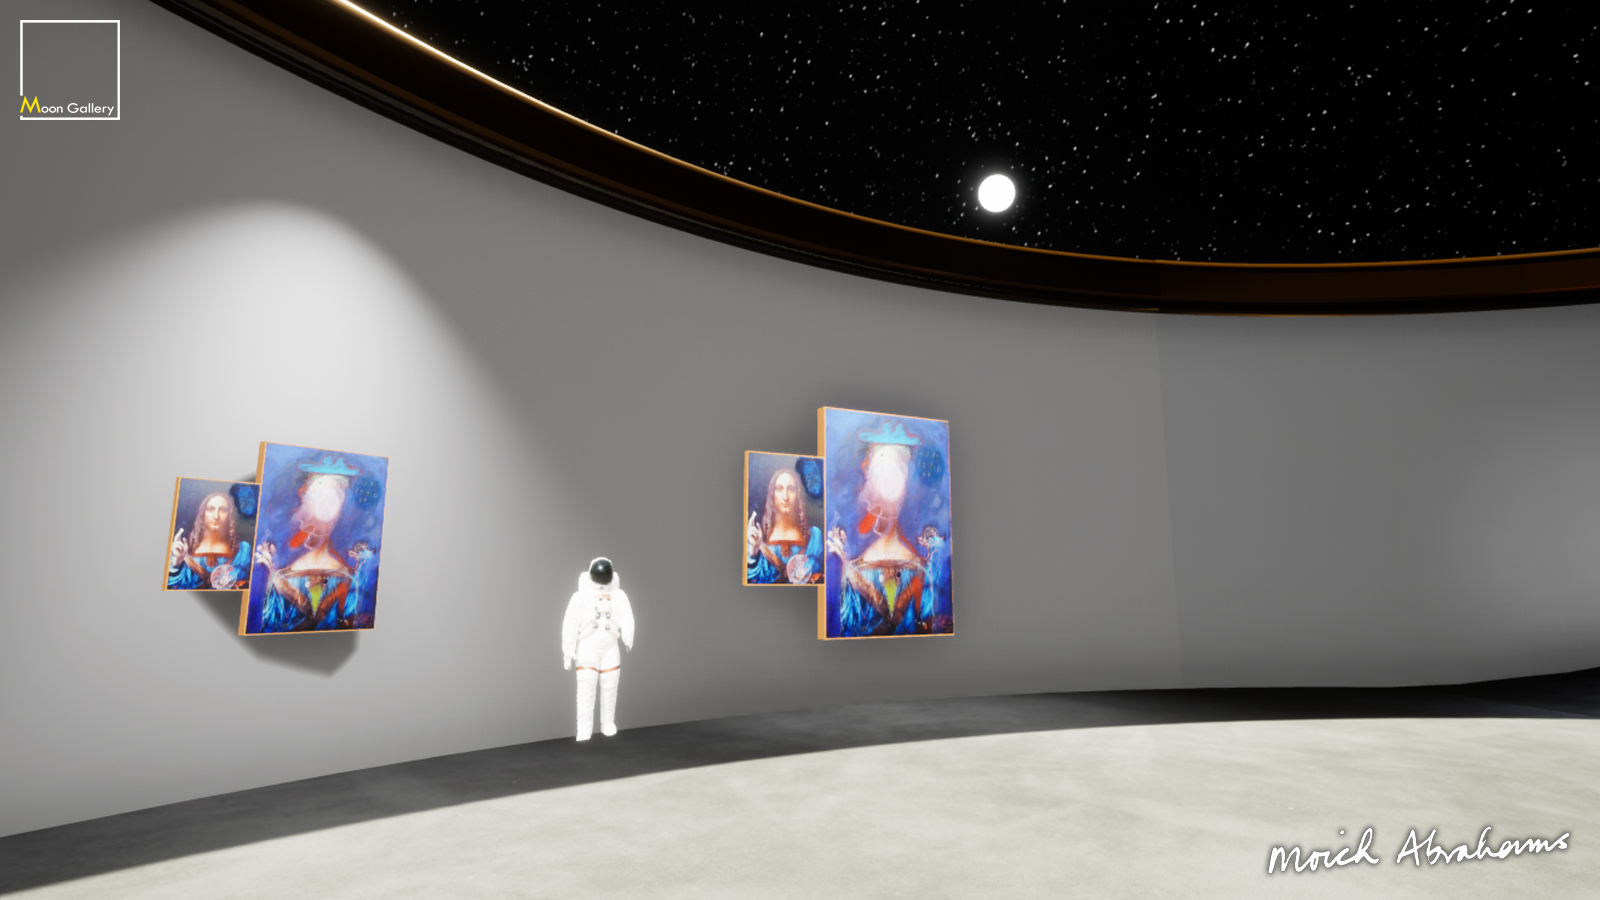 Immersive Exhibition Space - Show art in a virtual gallery